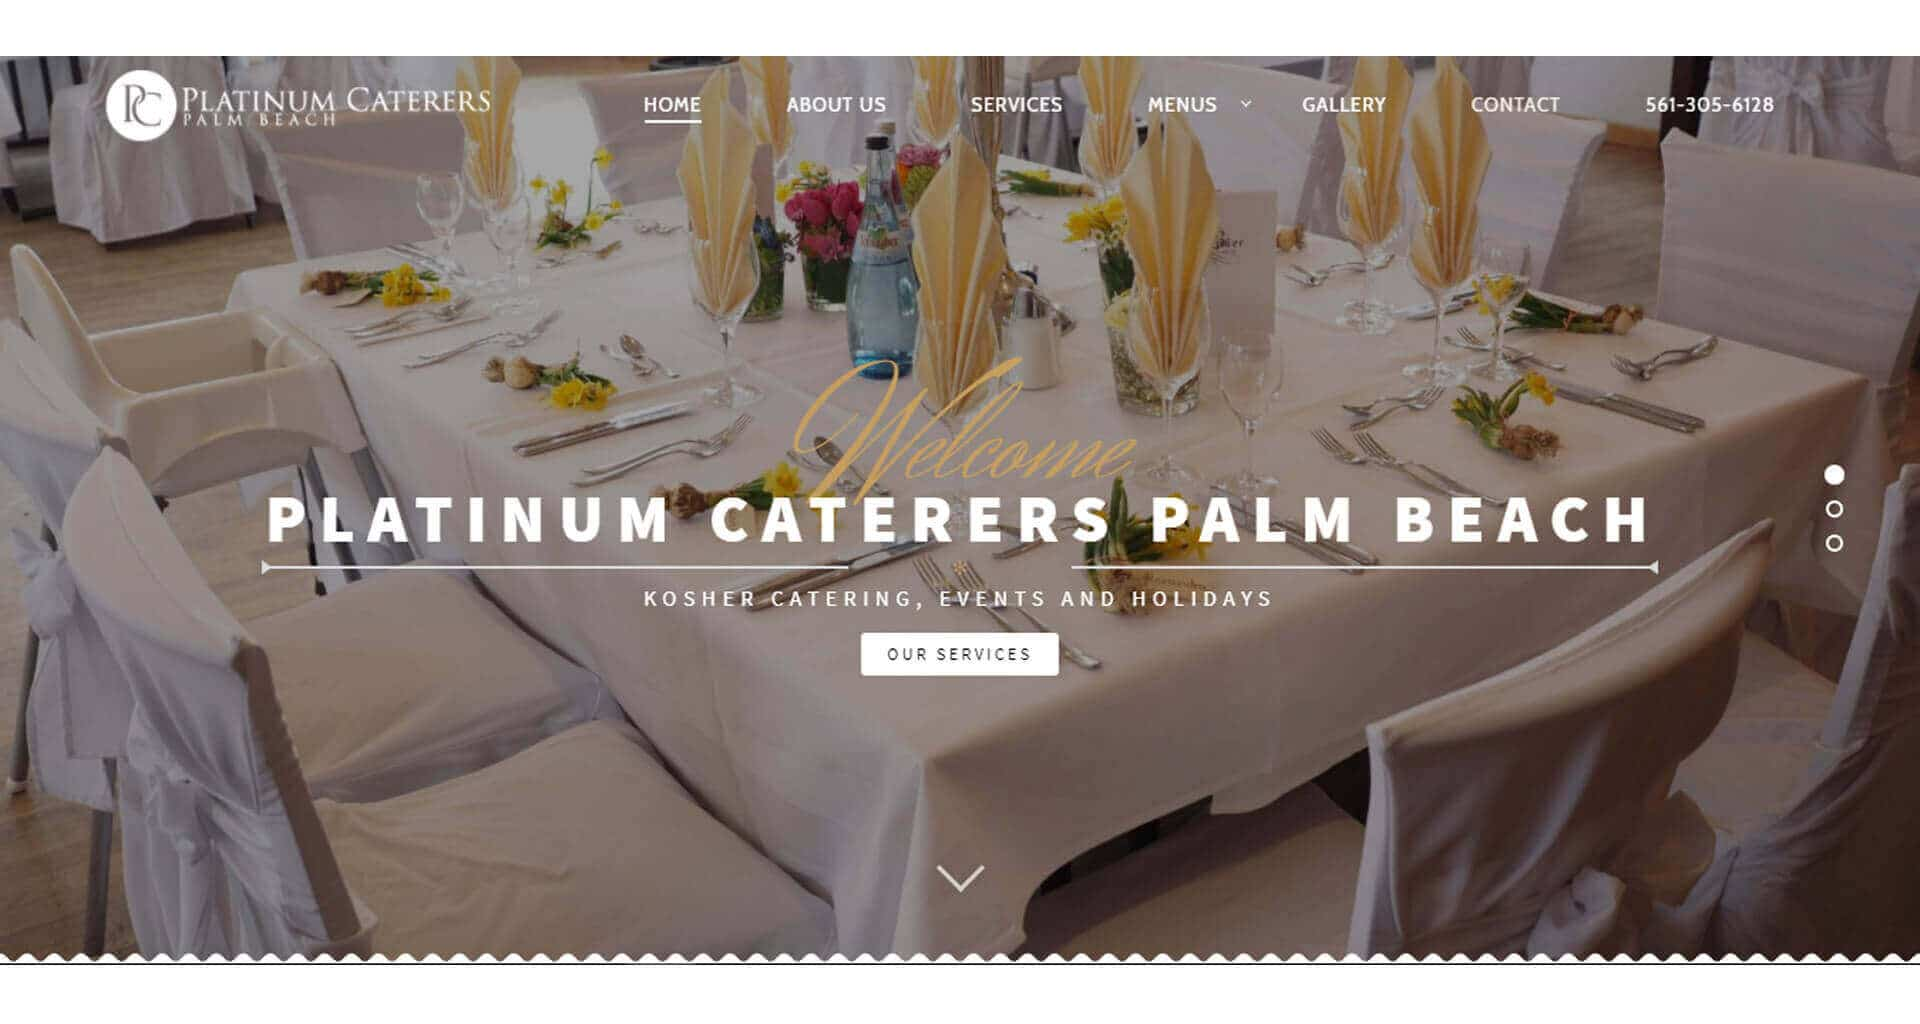 Platinum Caterers Palm Beach - Case Study